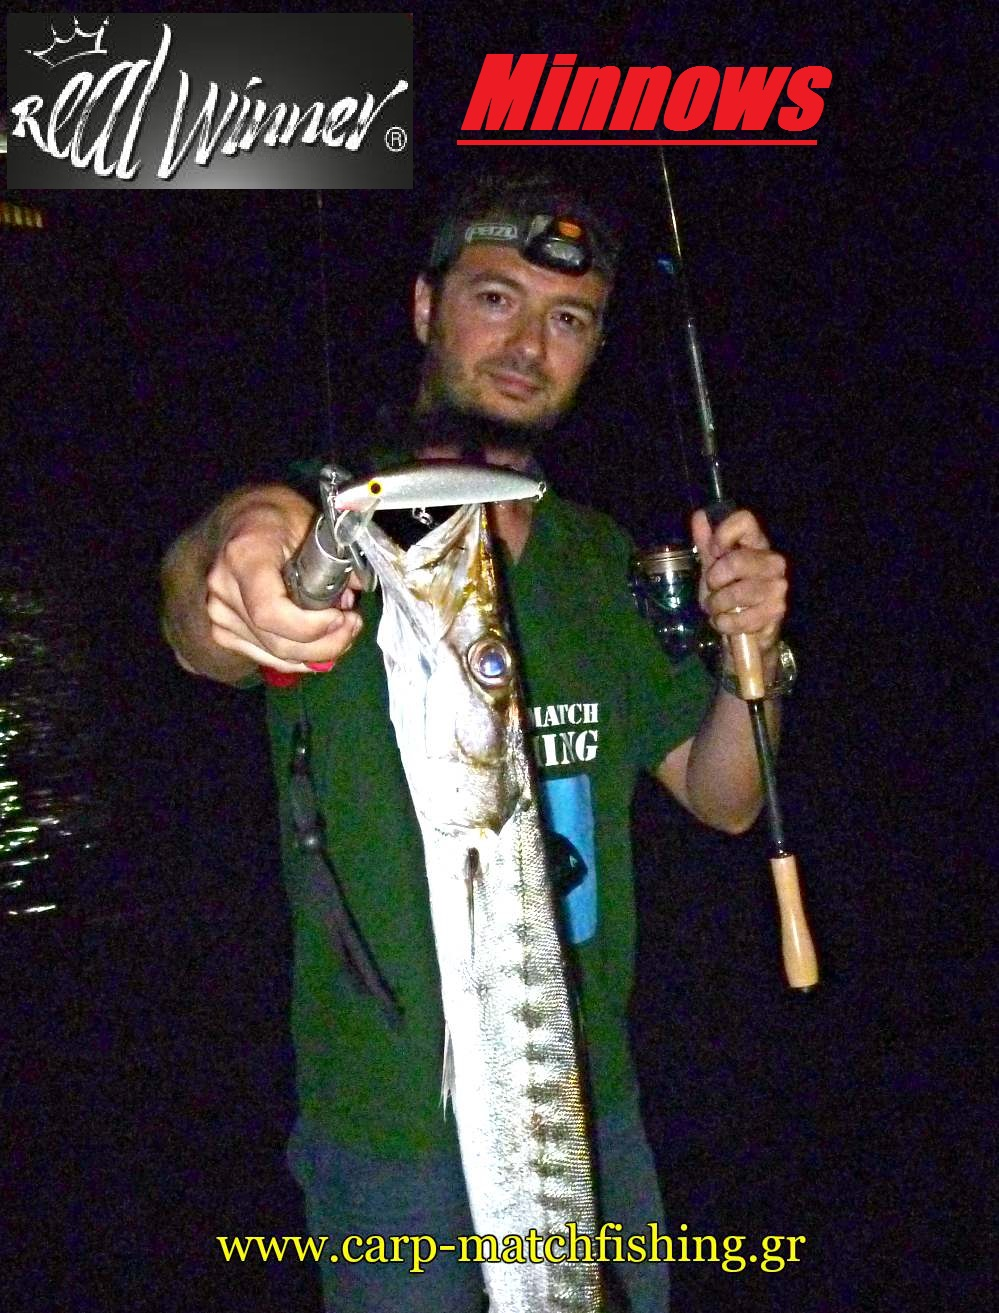 real-winner-loutsos-minnow-2-carpmatchfishing